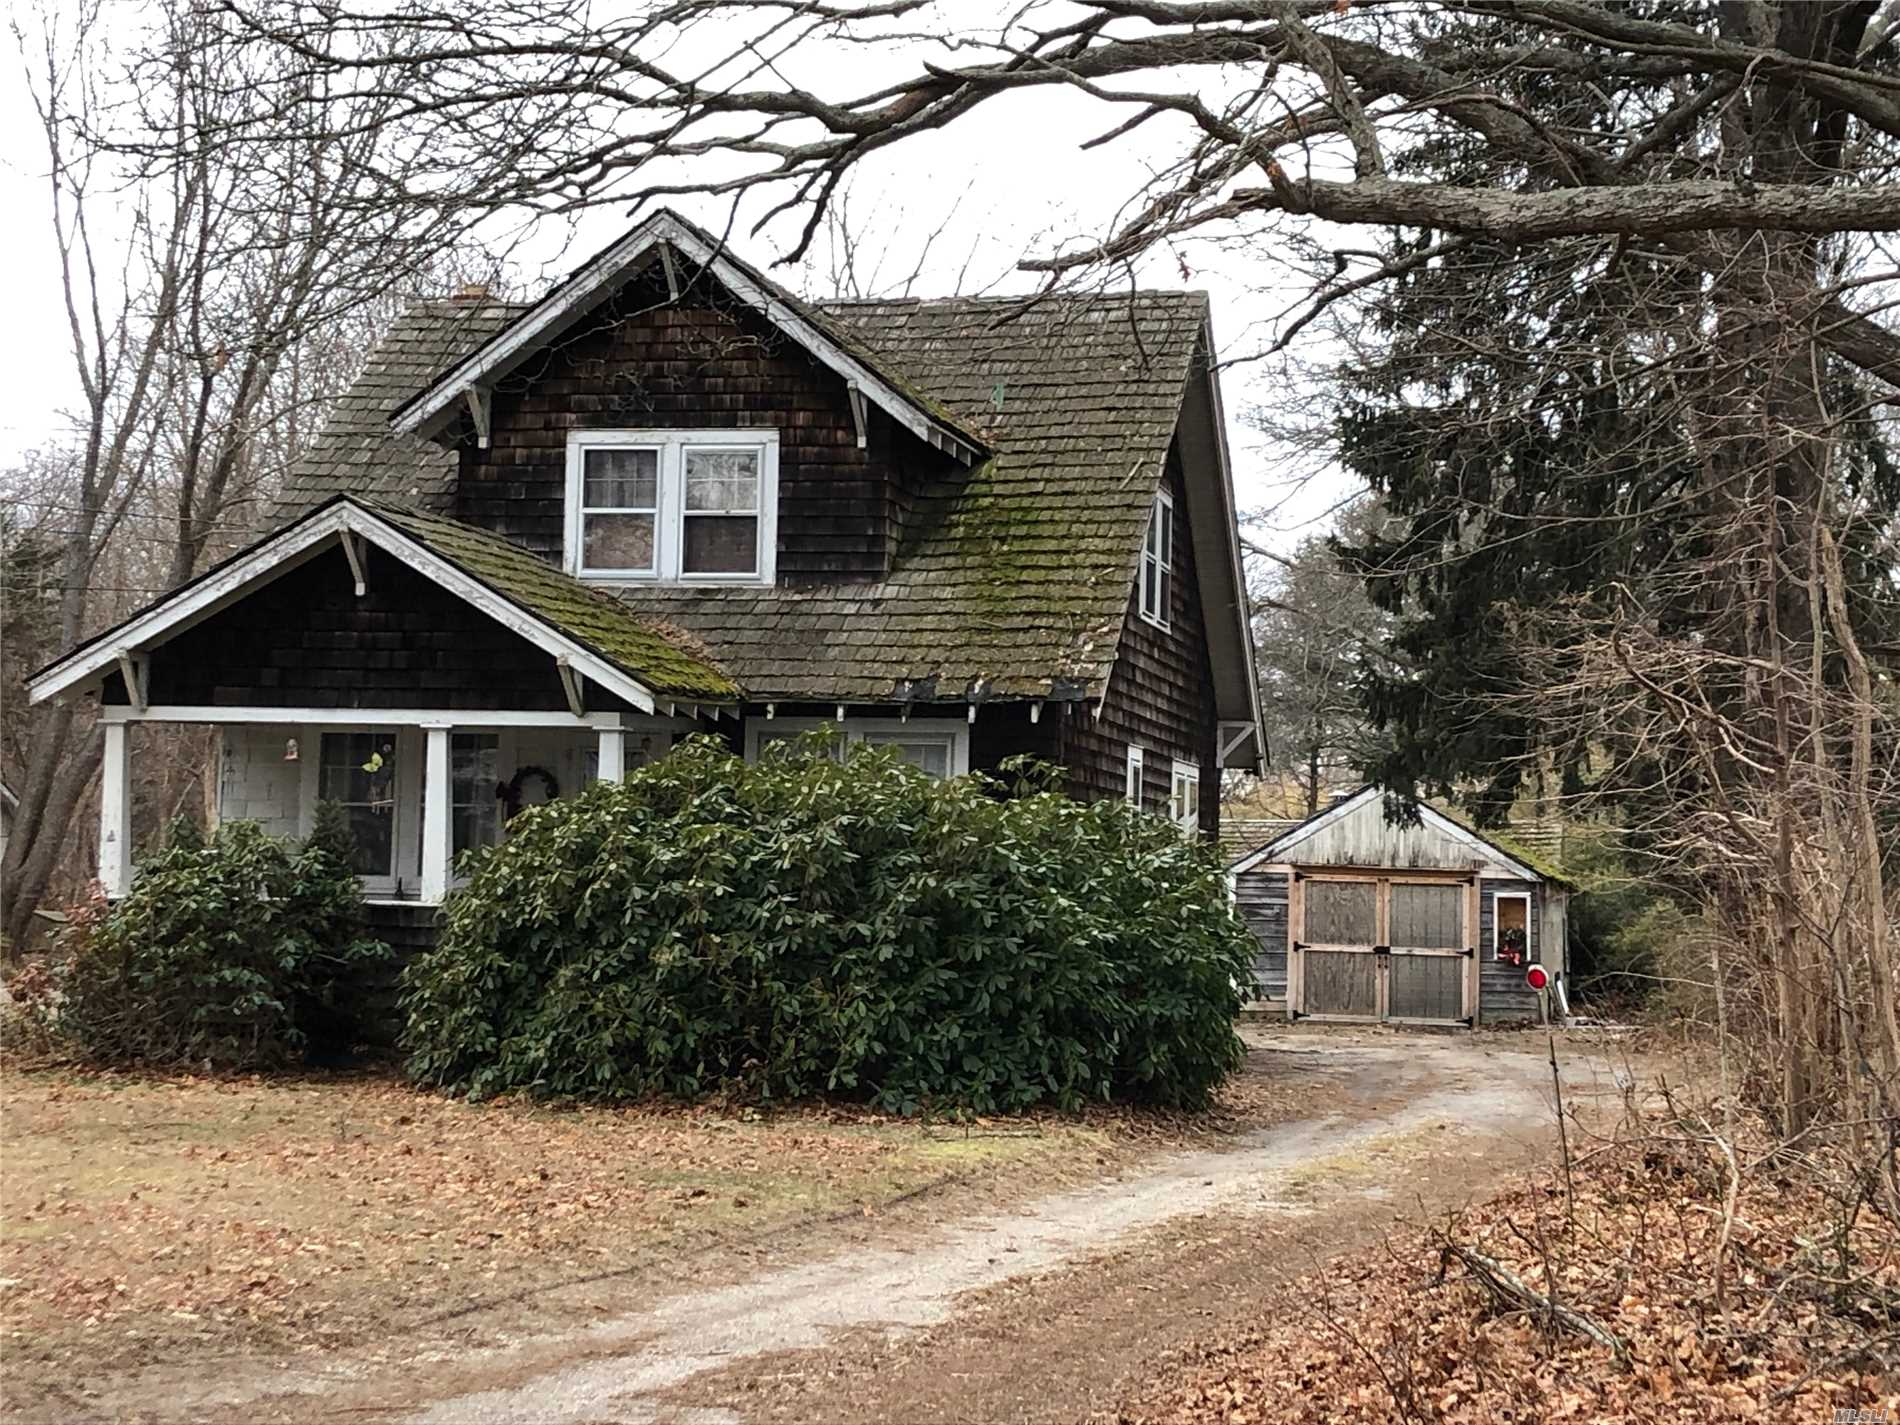 Large lot with Main house 2 car detached garage and a barn. This home is an investor or handyman's dream.